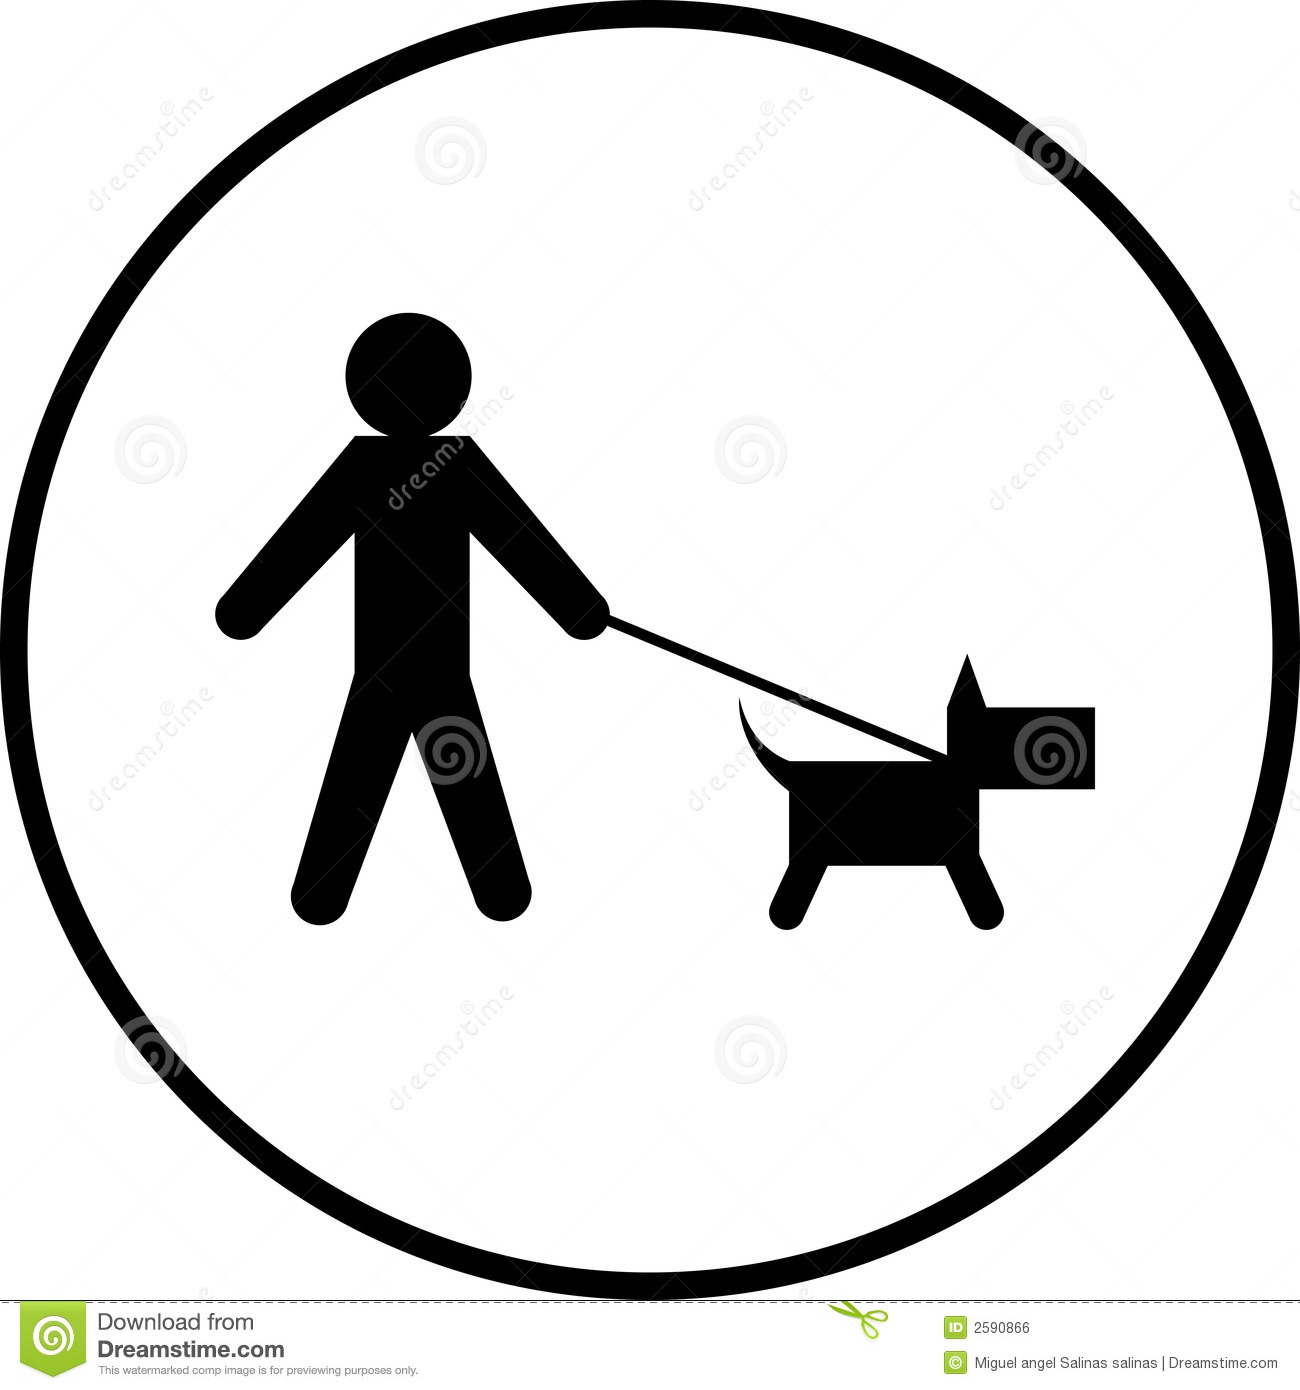 dog walk vector stock illustrations 12 954 dog walk vector stock illustrations vectors clipart dreamstime dog walk vector stock illustrations 12 954 dog walk vector stock illustrations vectors clipart dreamstime